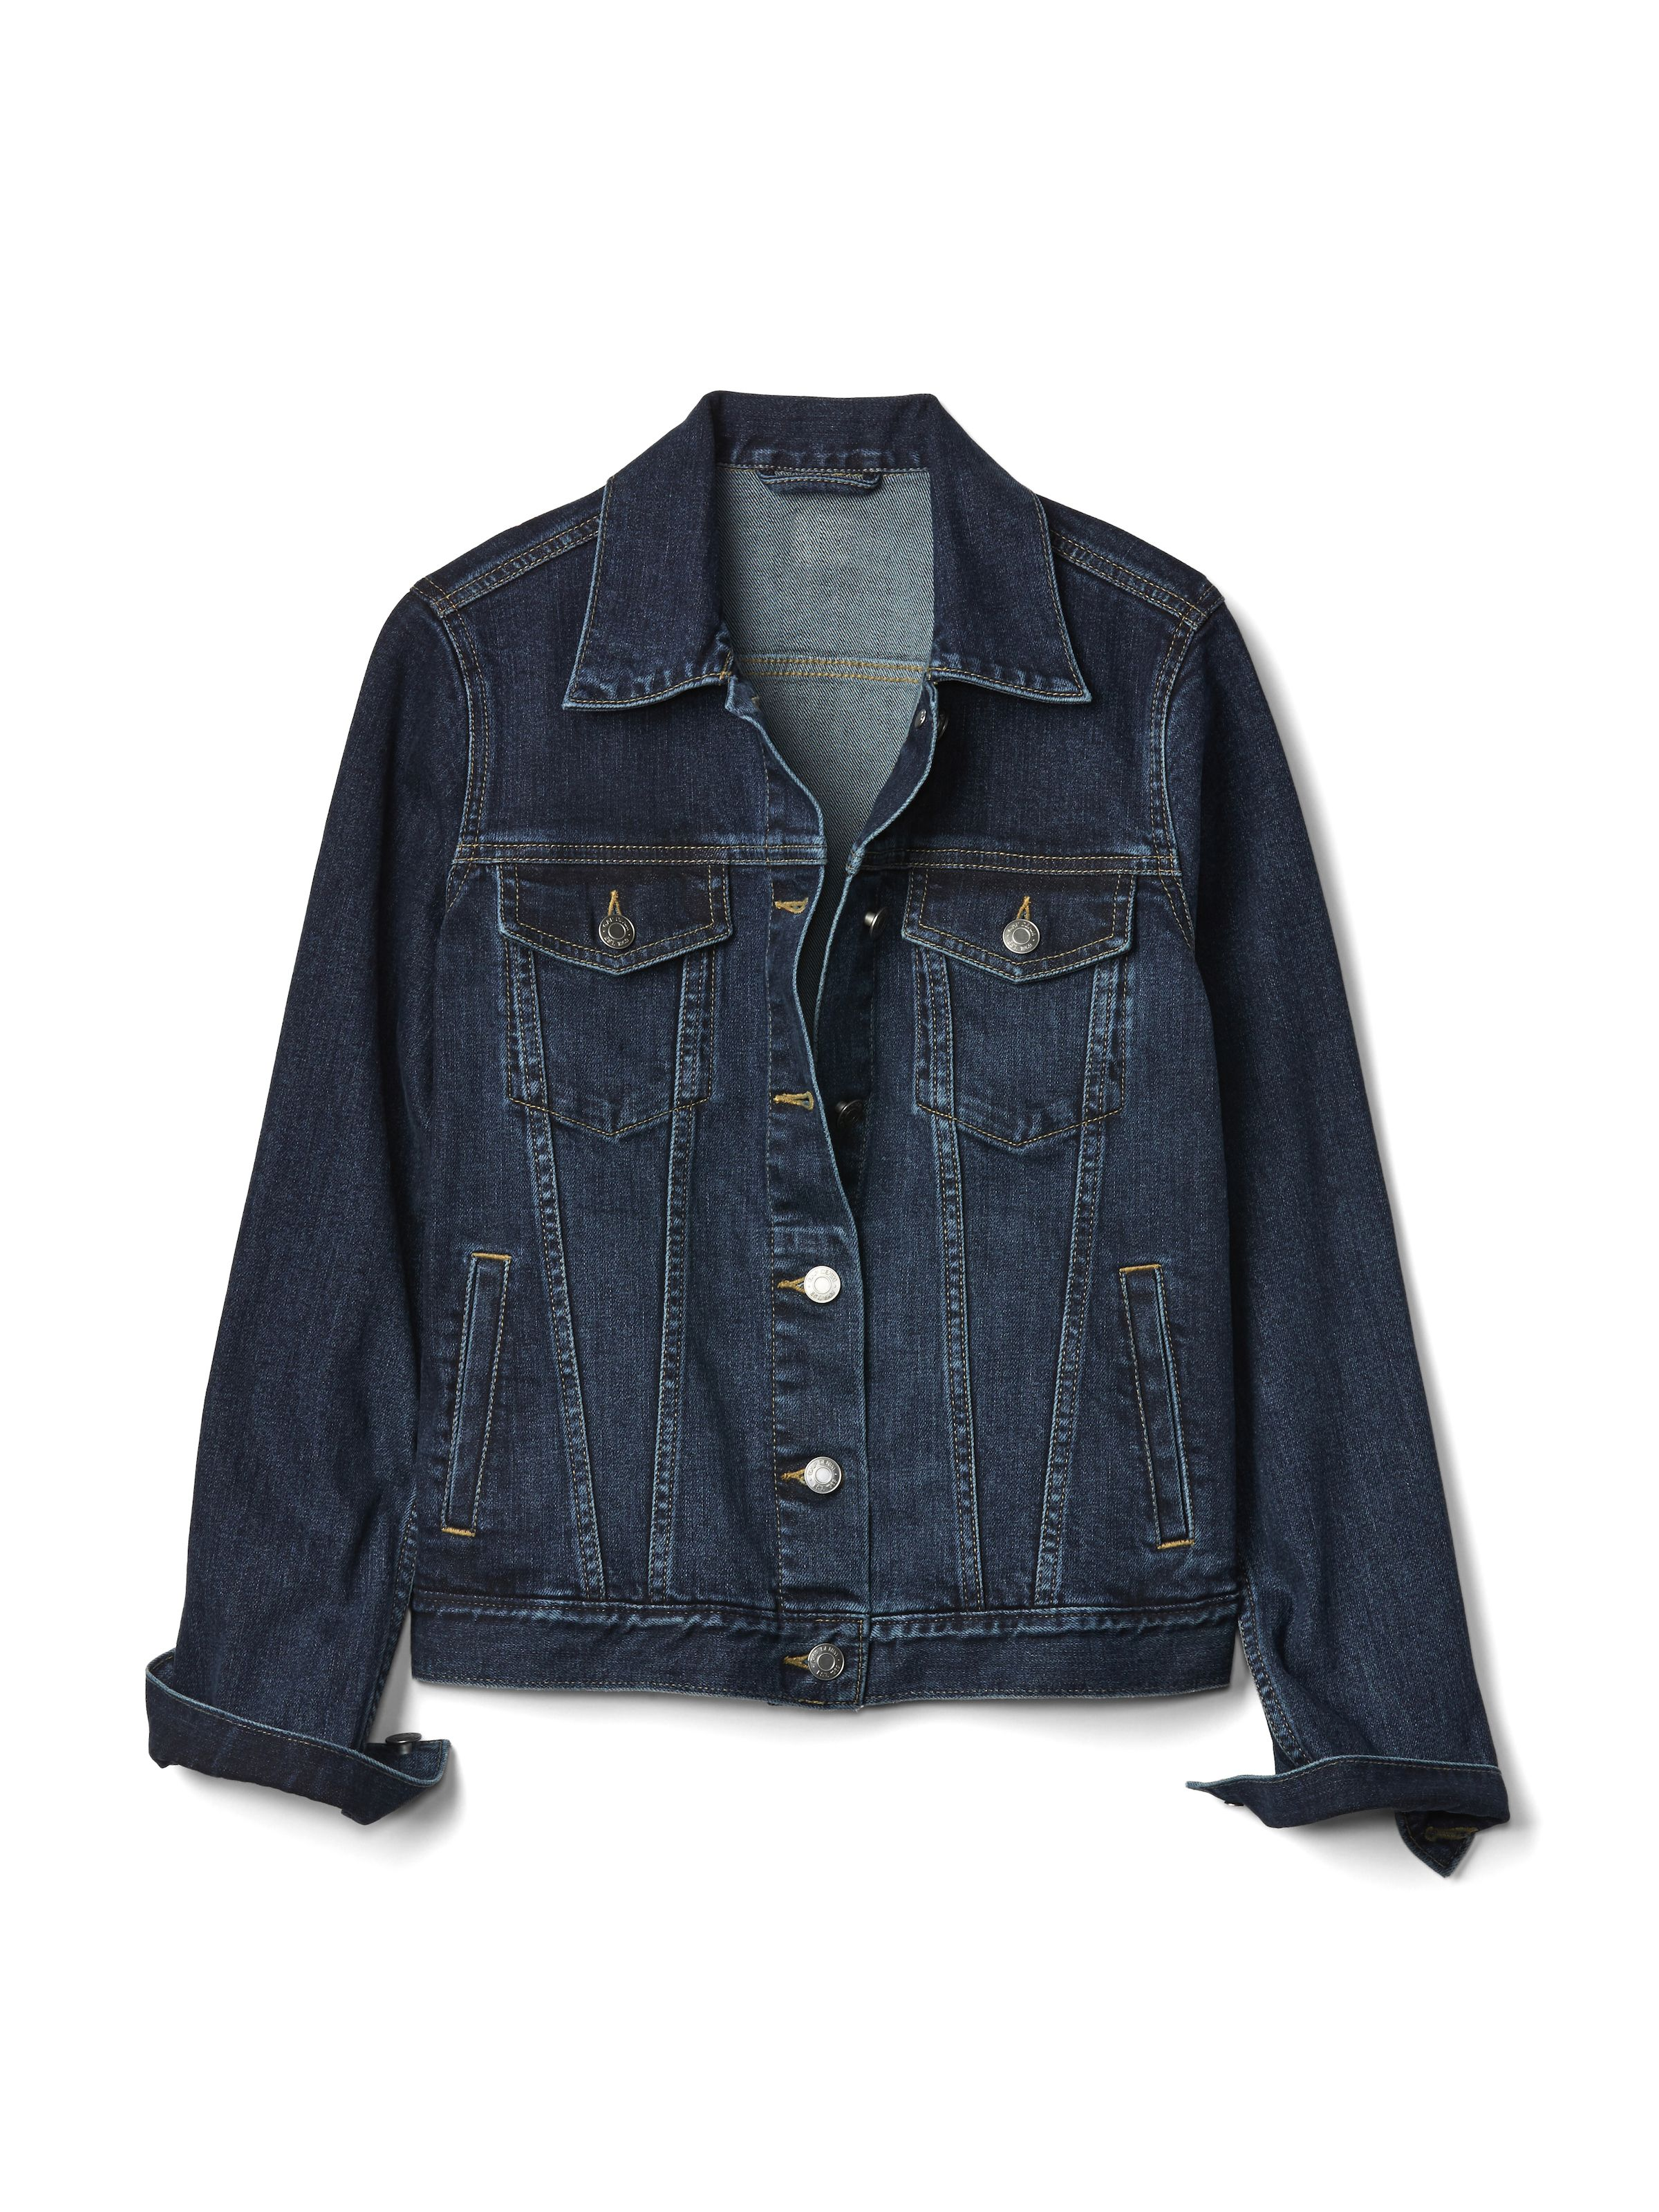 99097854d8fe0 18 Cute Denim Jacket Outfits for Women - Best Jean Jackets 2018